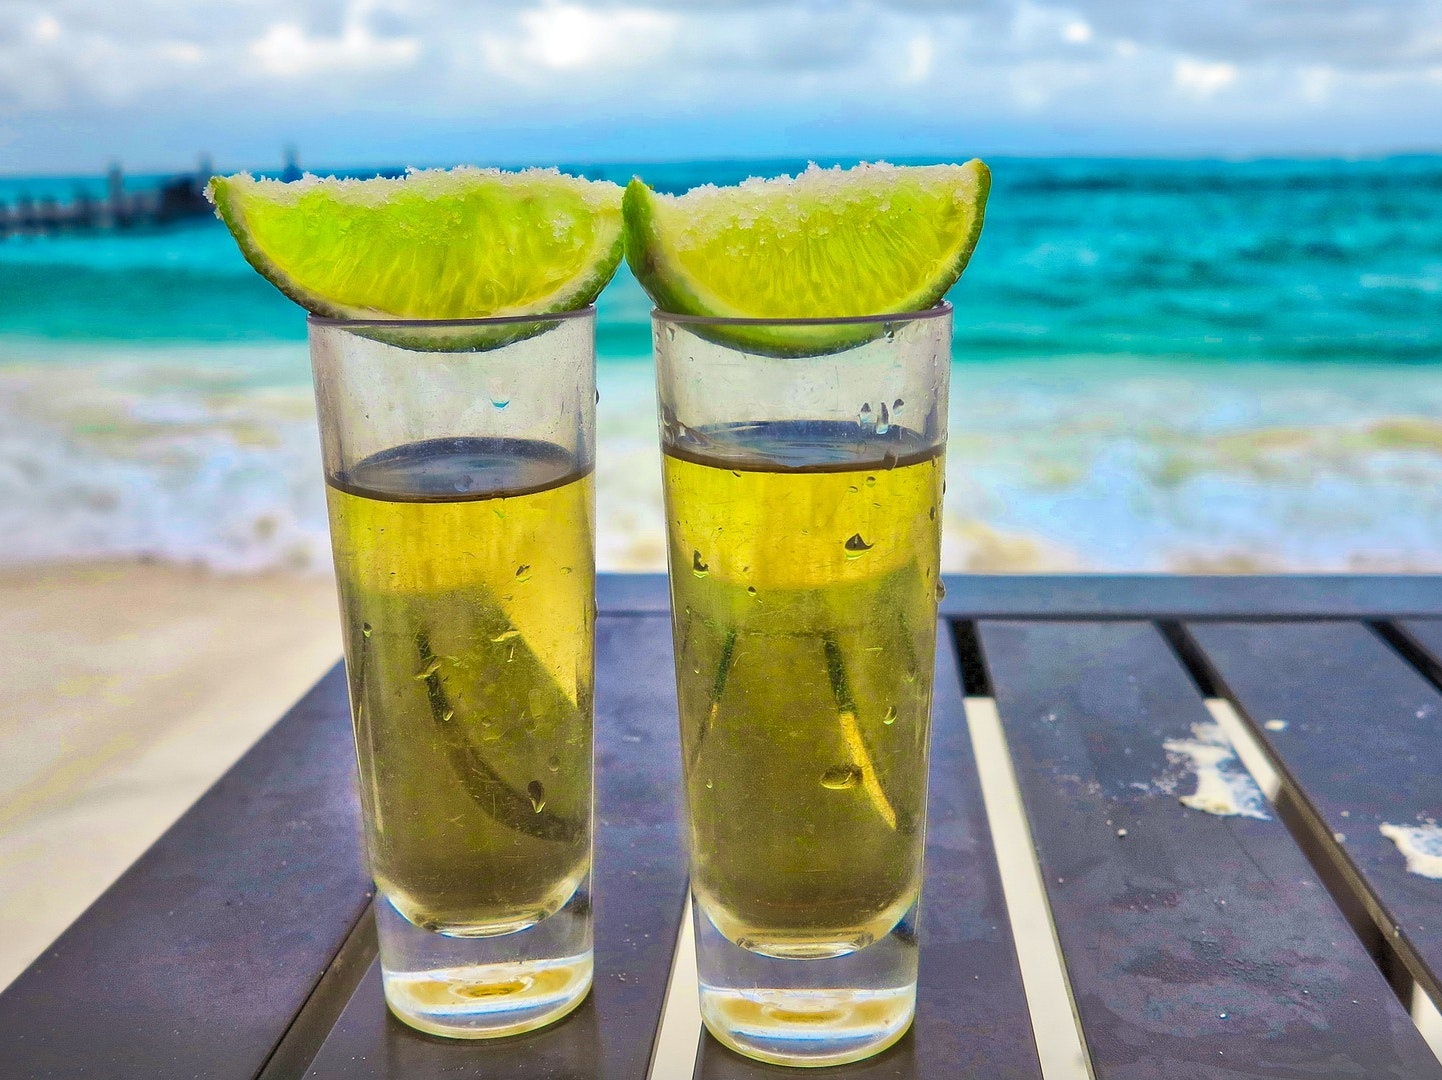 A Food Historian Answers These 3 Burning Questions About Tequila